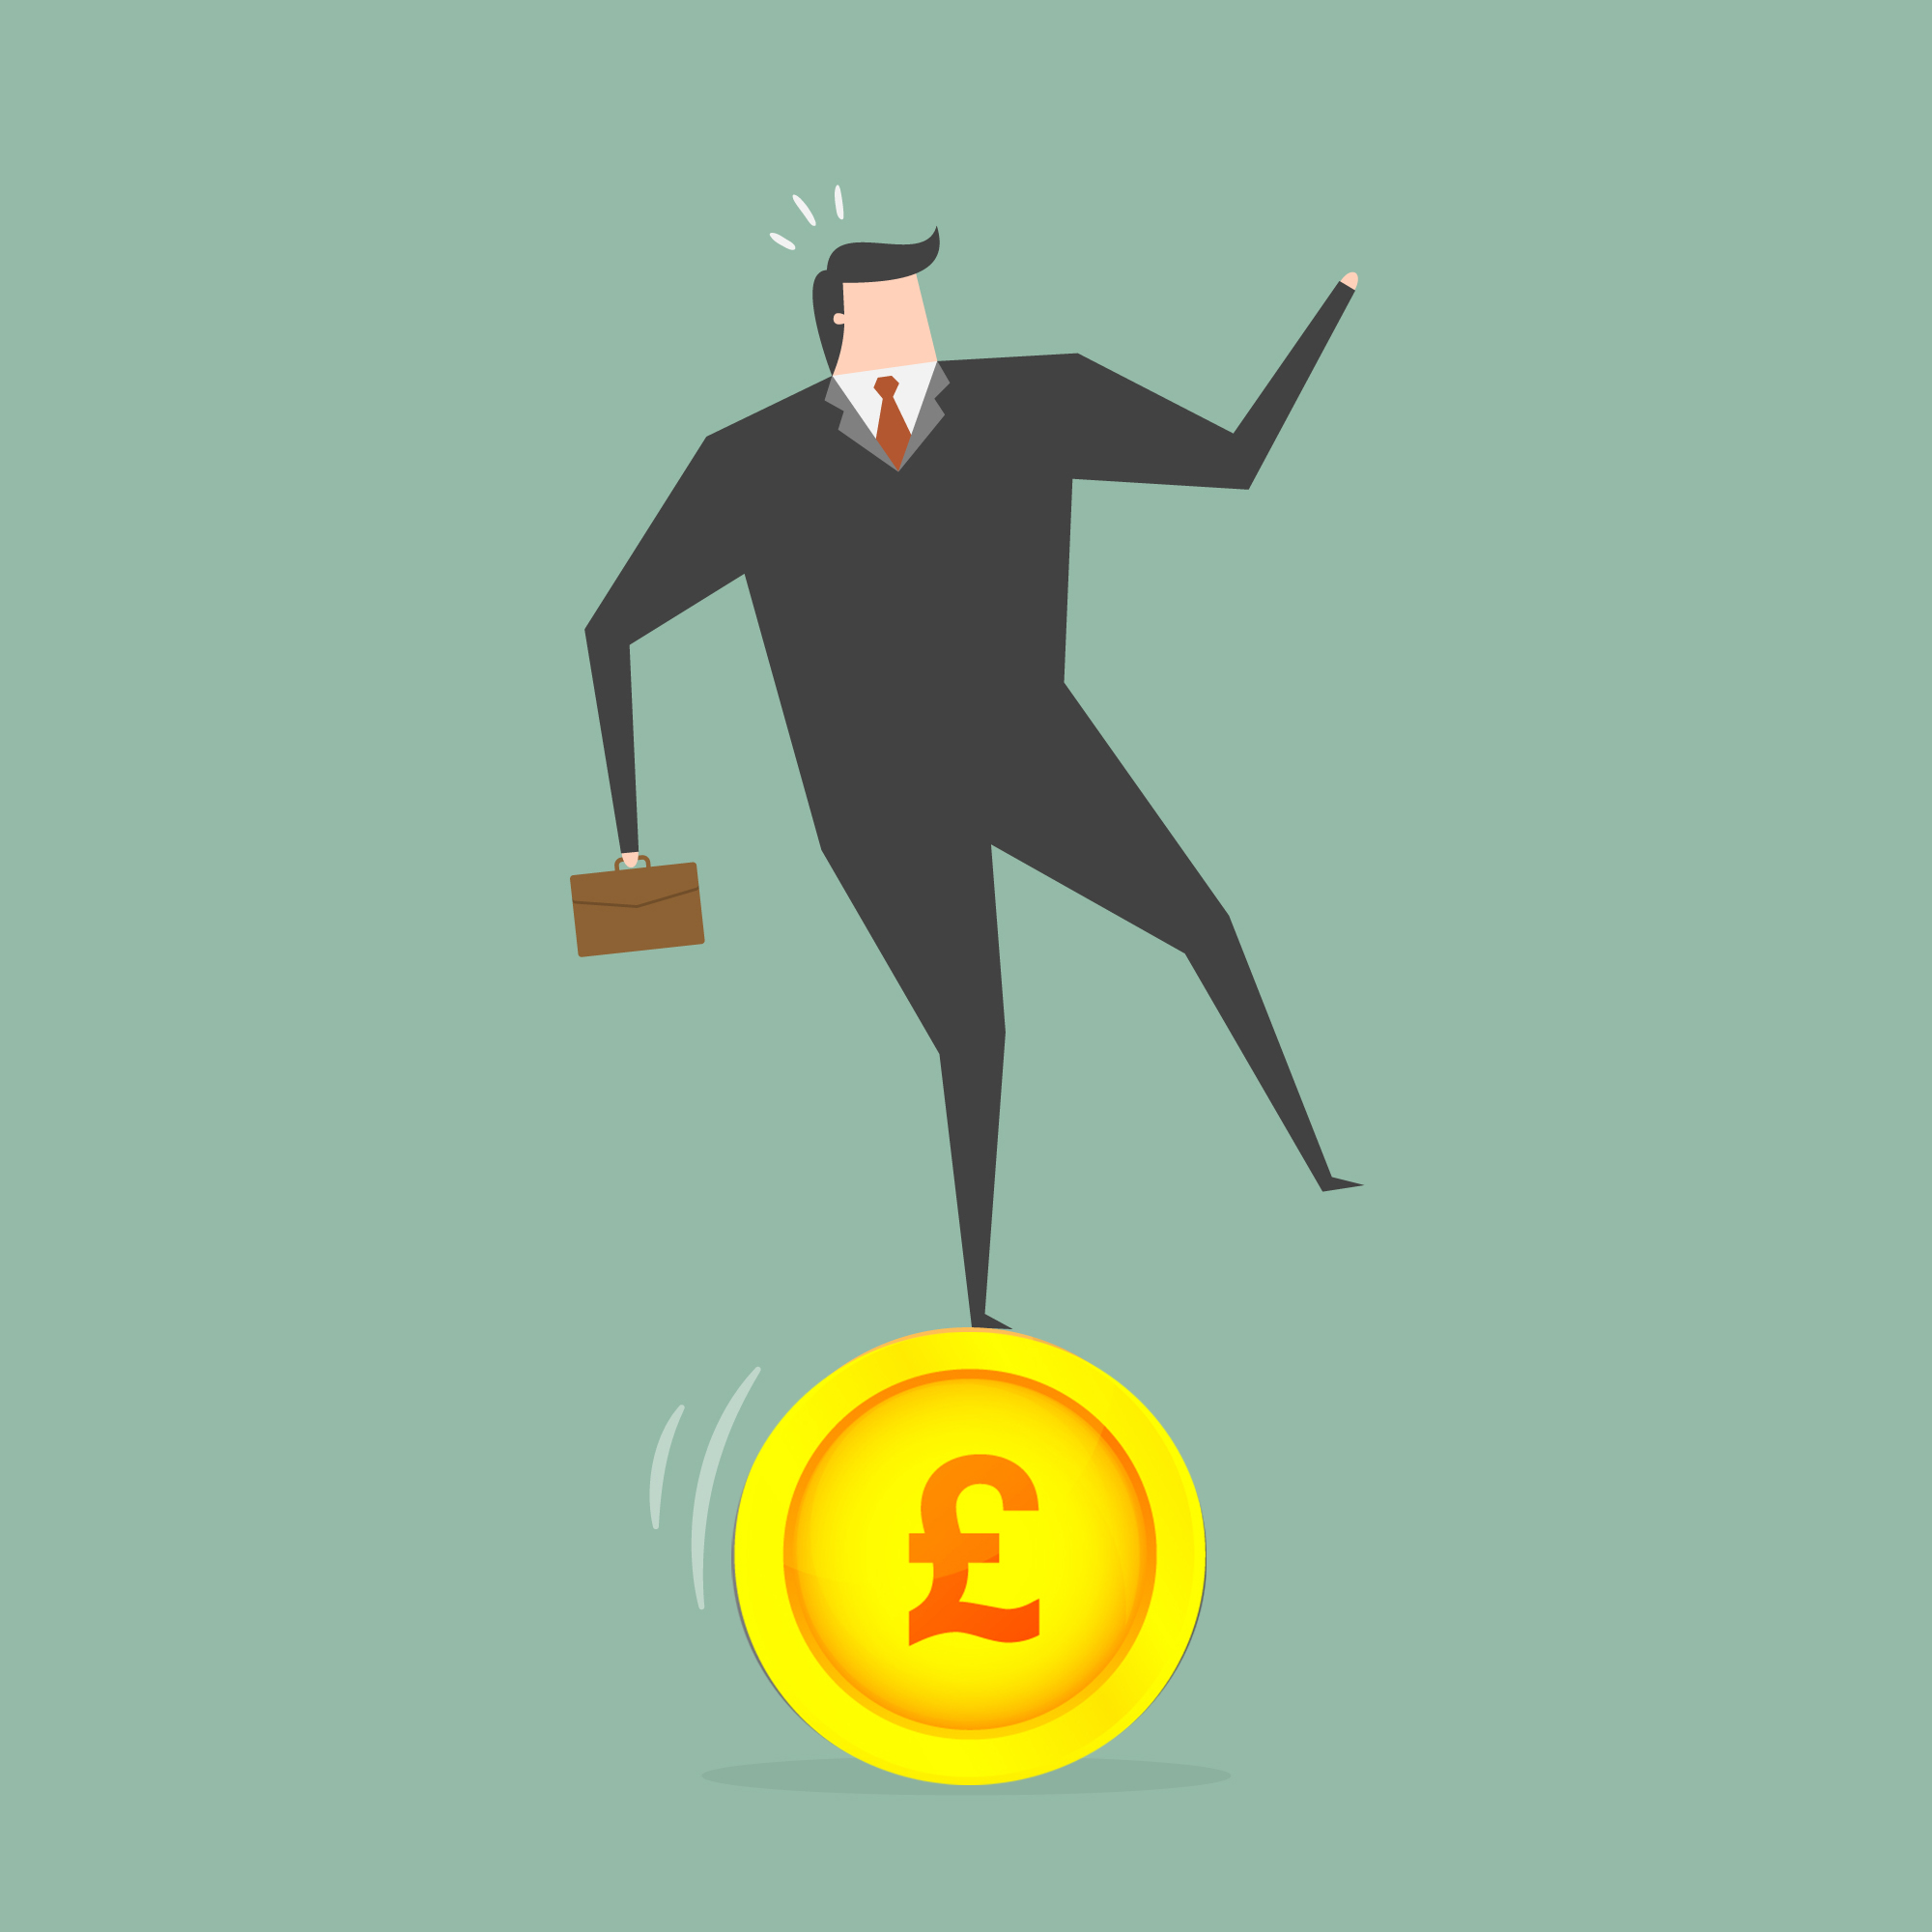 "<a href=""http://www.freepik.com/free-vector/businessman-on-a-coin_1076082.htm"">Designed by Freepik</a>"